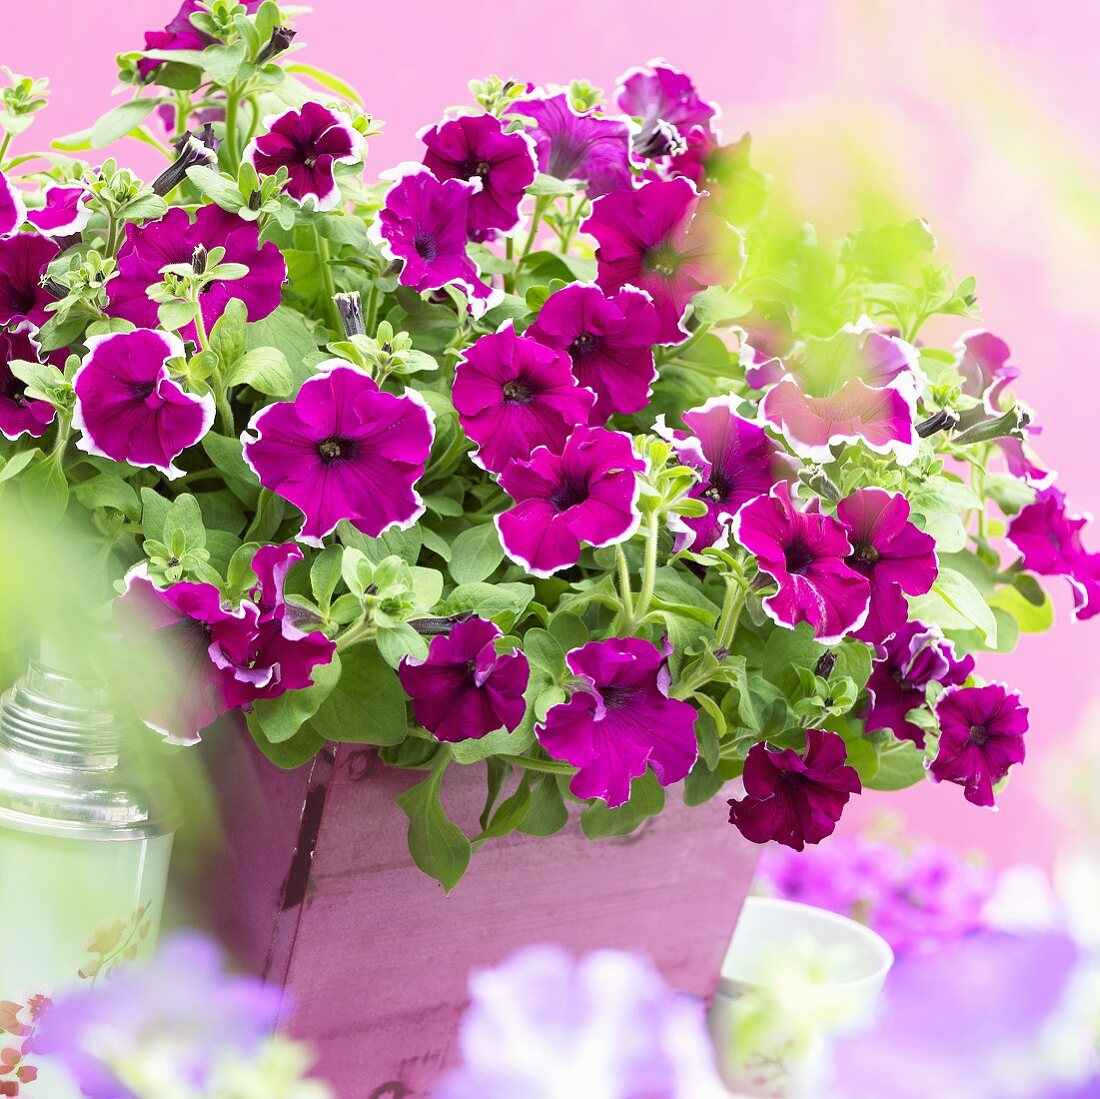 Petunia Viva 'Purple Picotee' in pink planter